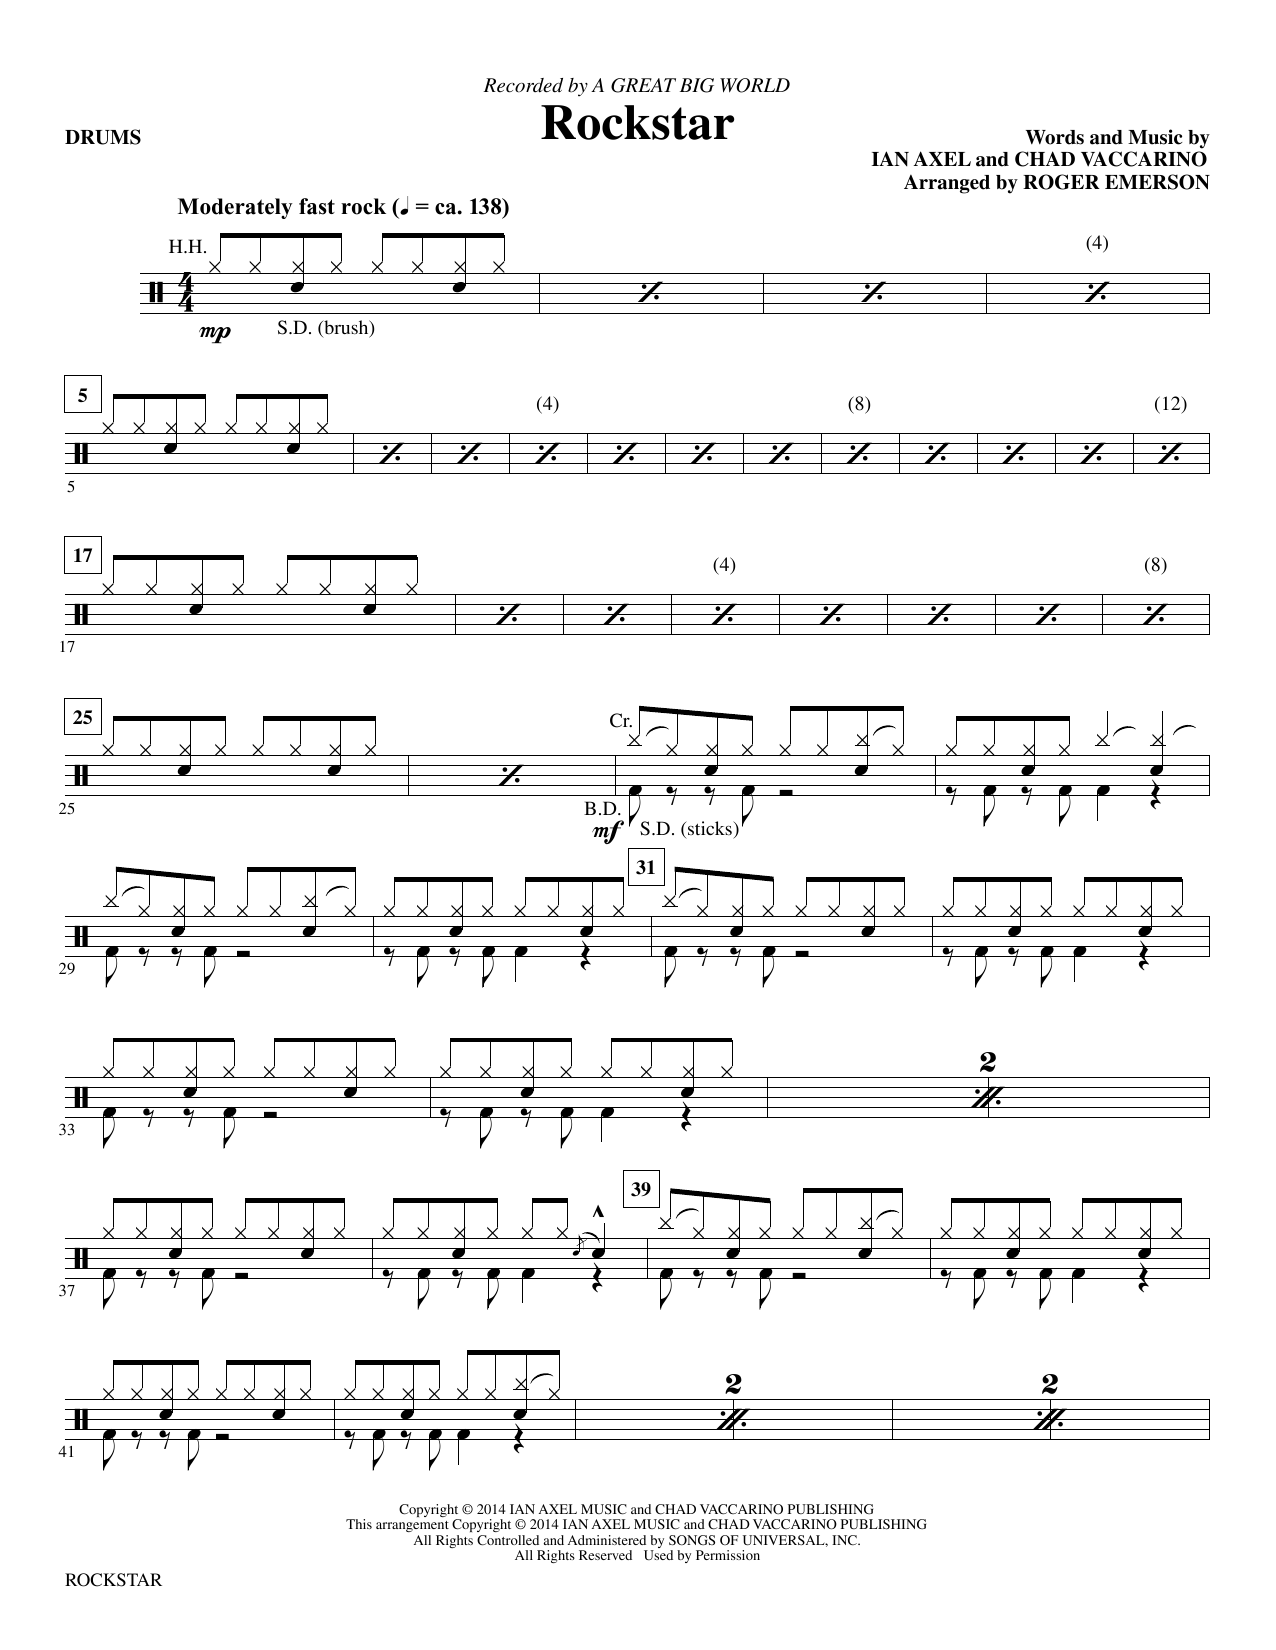 Download A Great Big World 'Rockstar (arr. Roger Emerson) - Drums' Digital Sheet Music Notes & Chords and start playing in minutes